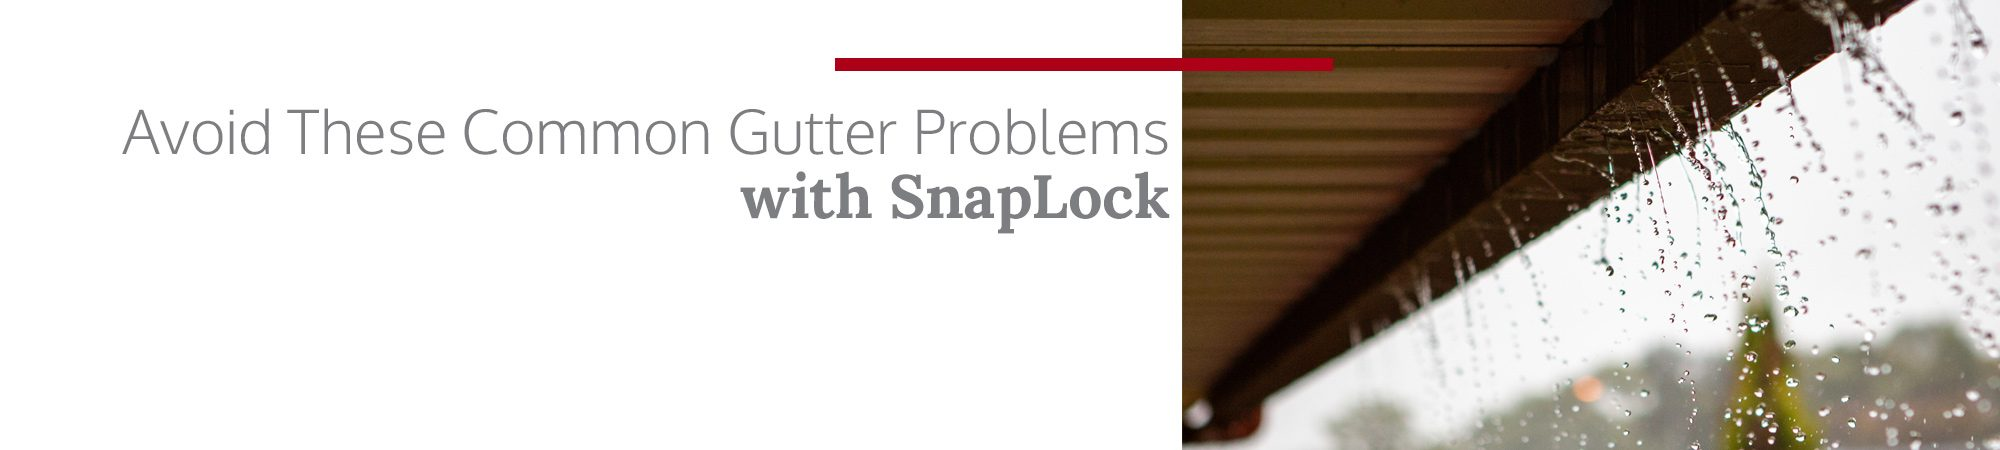 Snaplock - Choose Our Syracuse Gutter Experts For Your